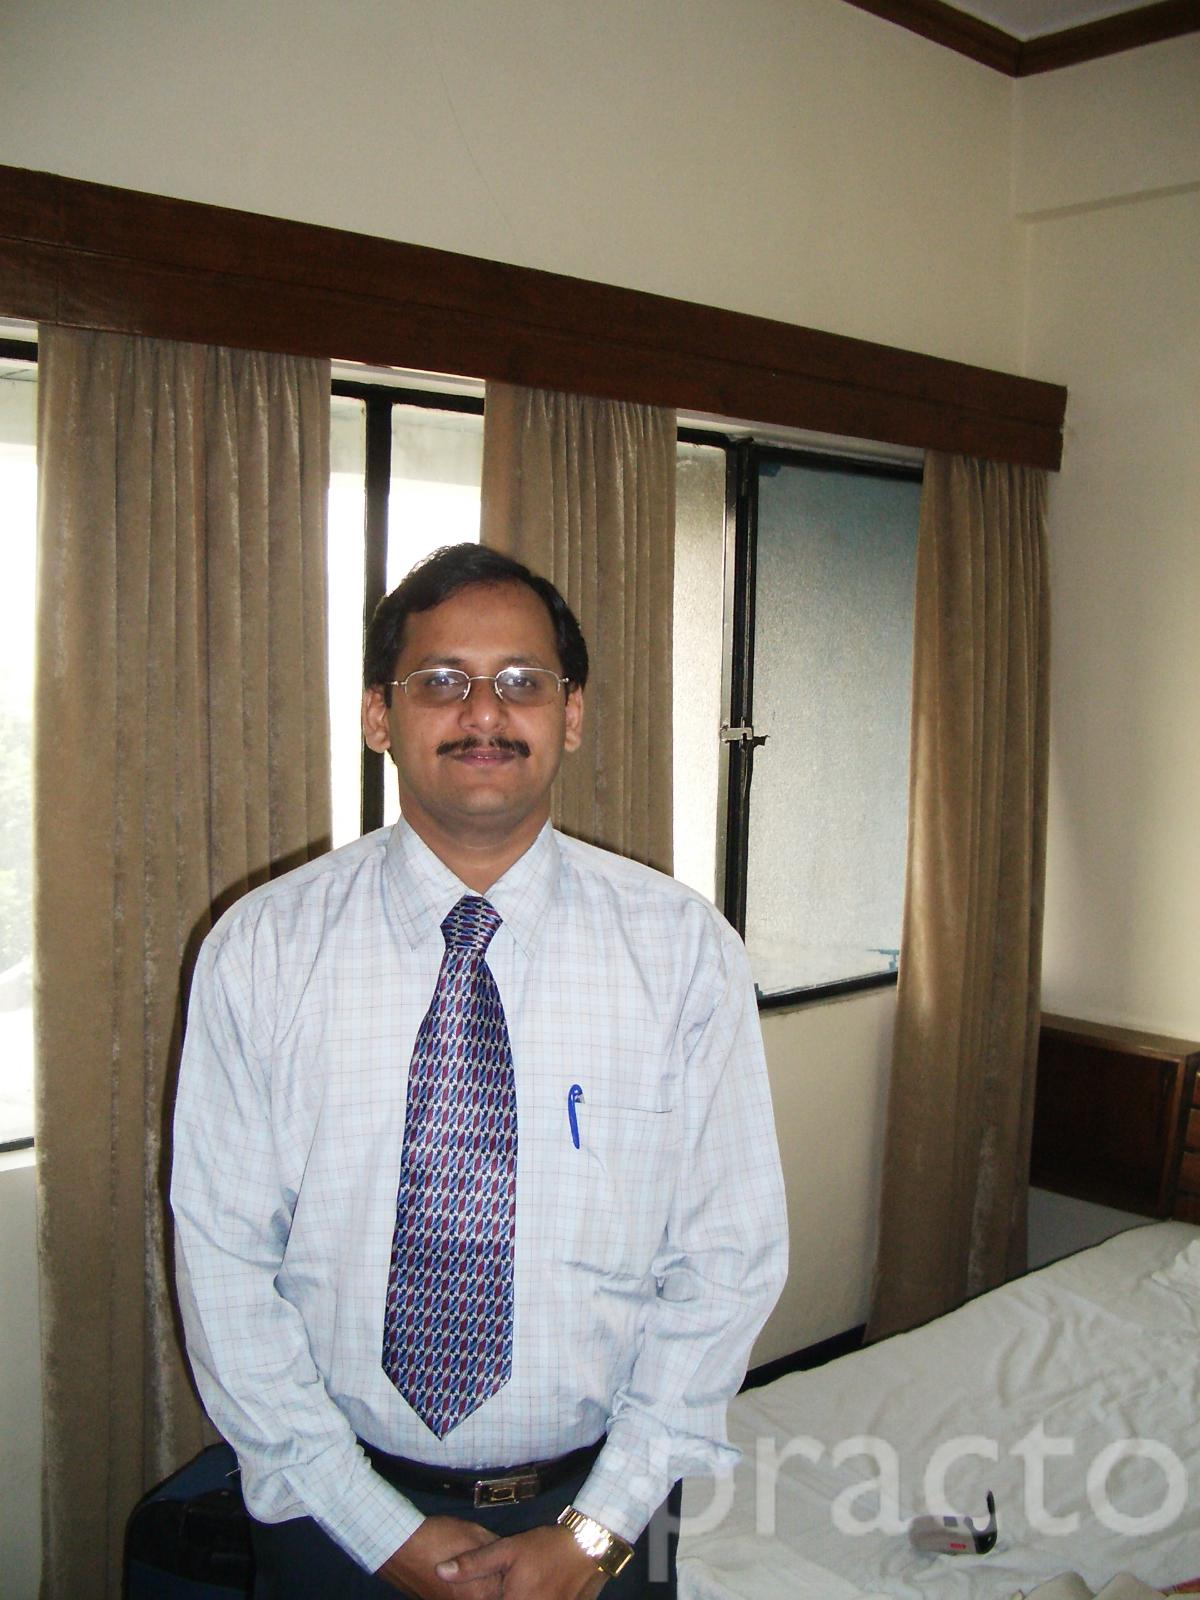 Dr. Madhusudan G - Plastic Surgeon